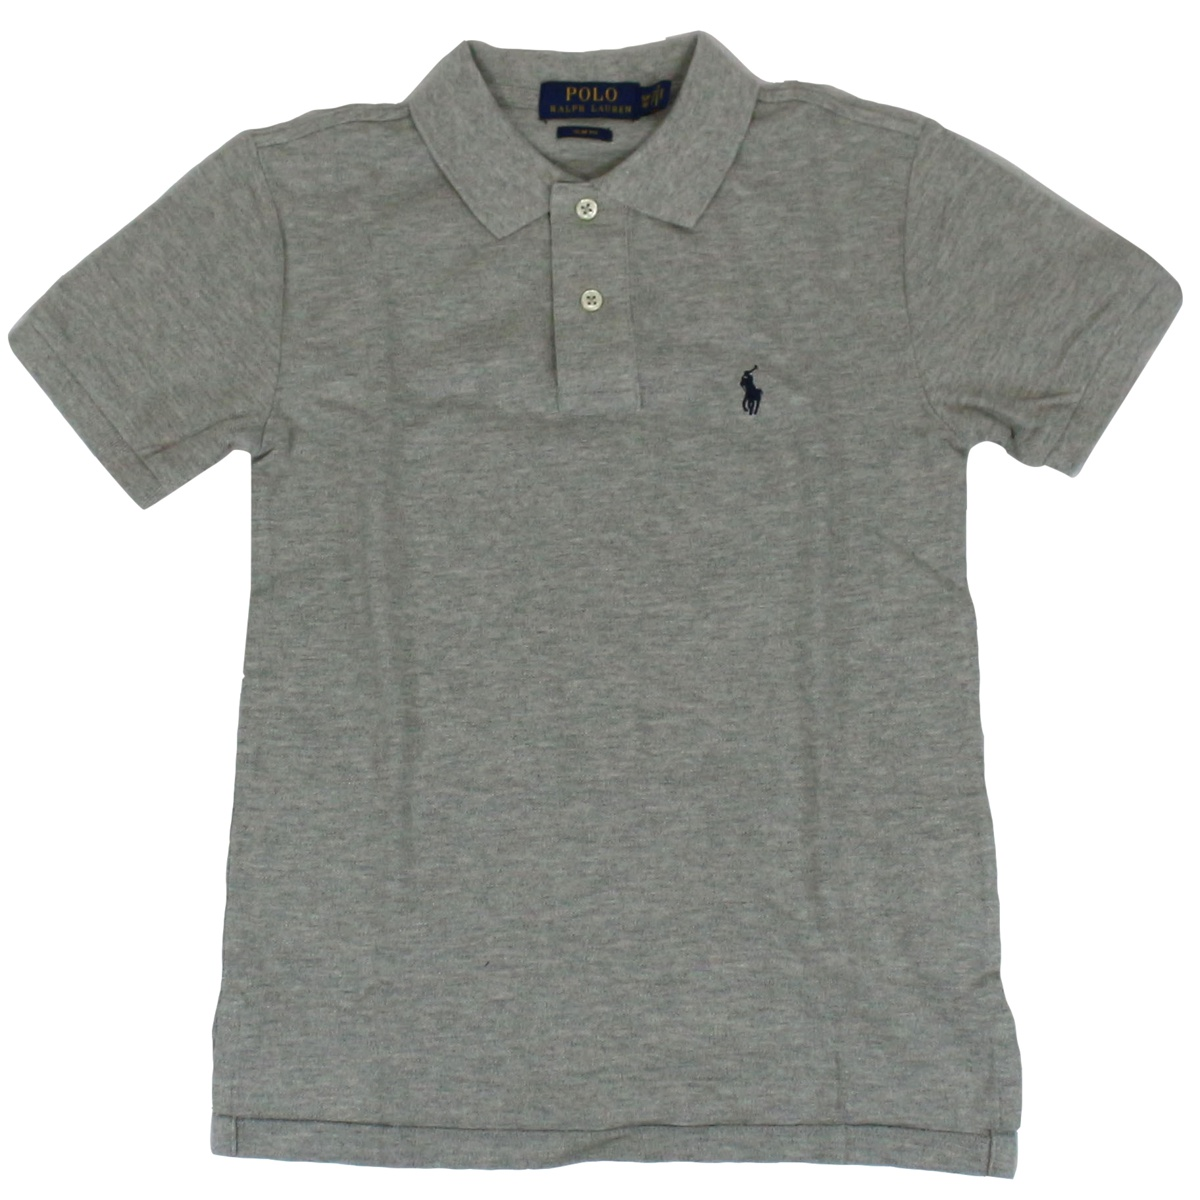 2 button cotton polo shirt Grey Polo Ralph Lauren